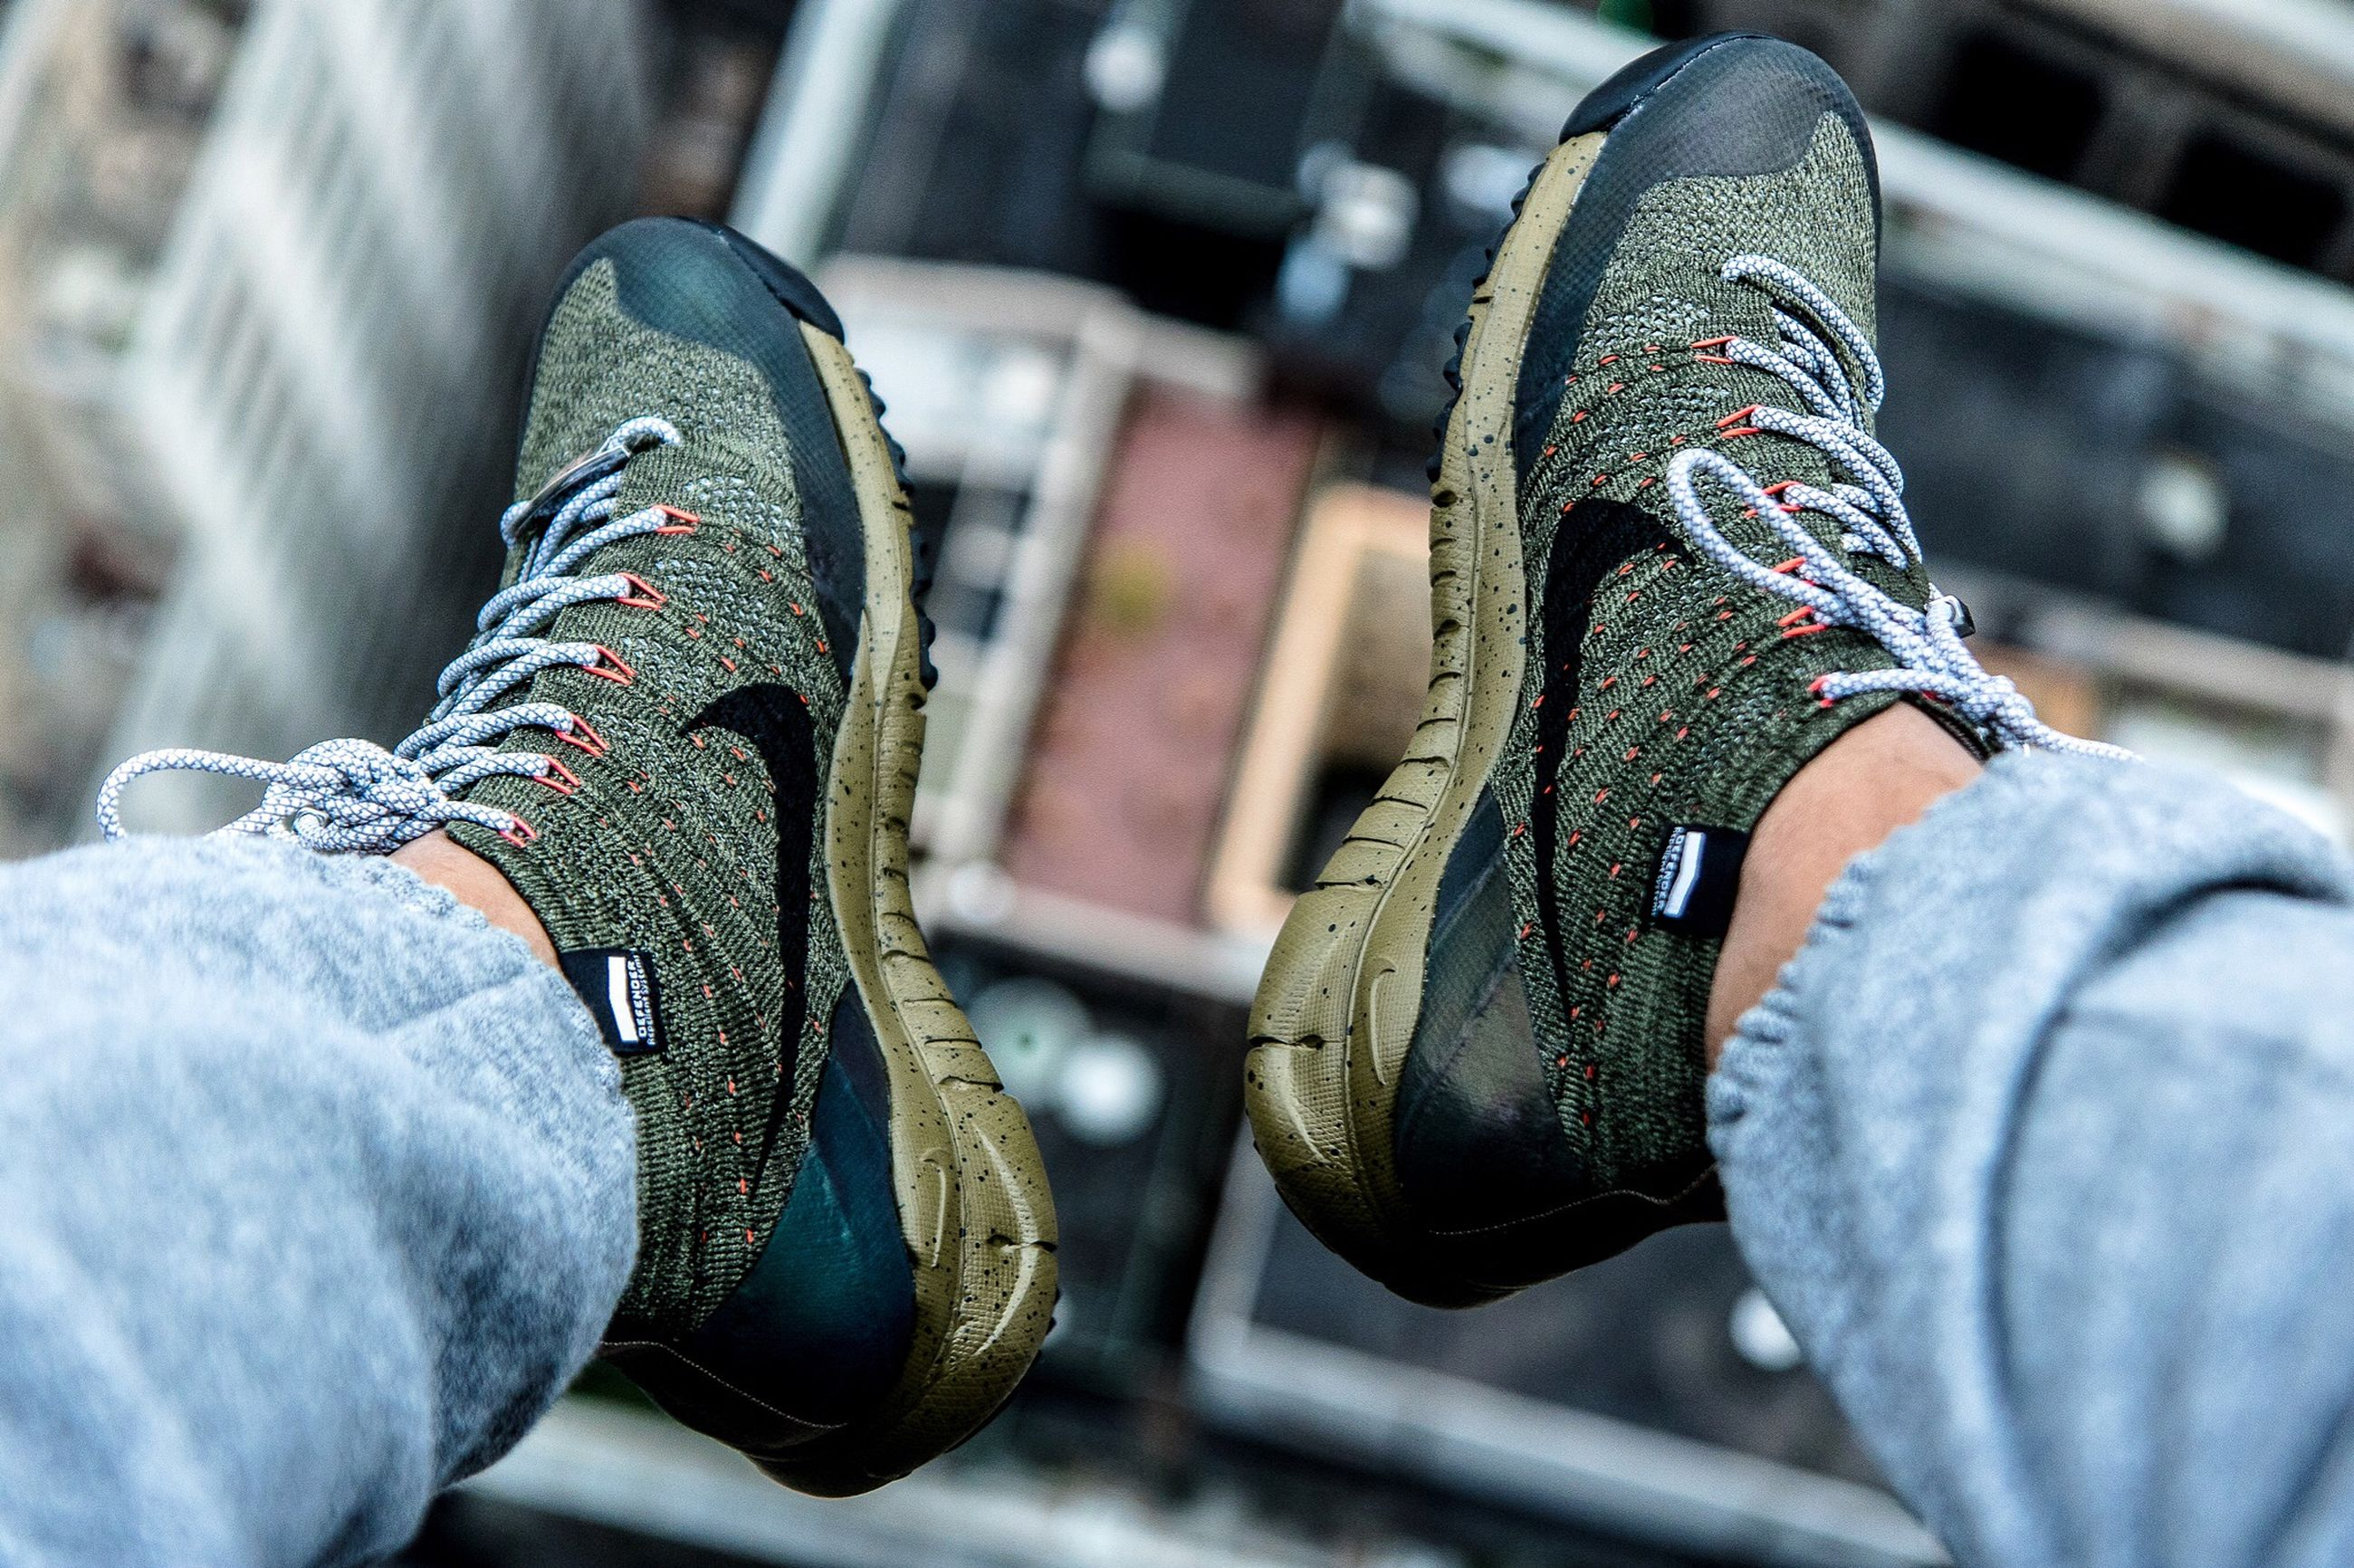 low section, shoe, person, jeans, lifestyles, focus on foreground, footwear, standing, men, fashion, casual clothing, close-up, leisure activity, selective focus, canvas shoe, personal perspective, human foot